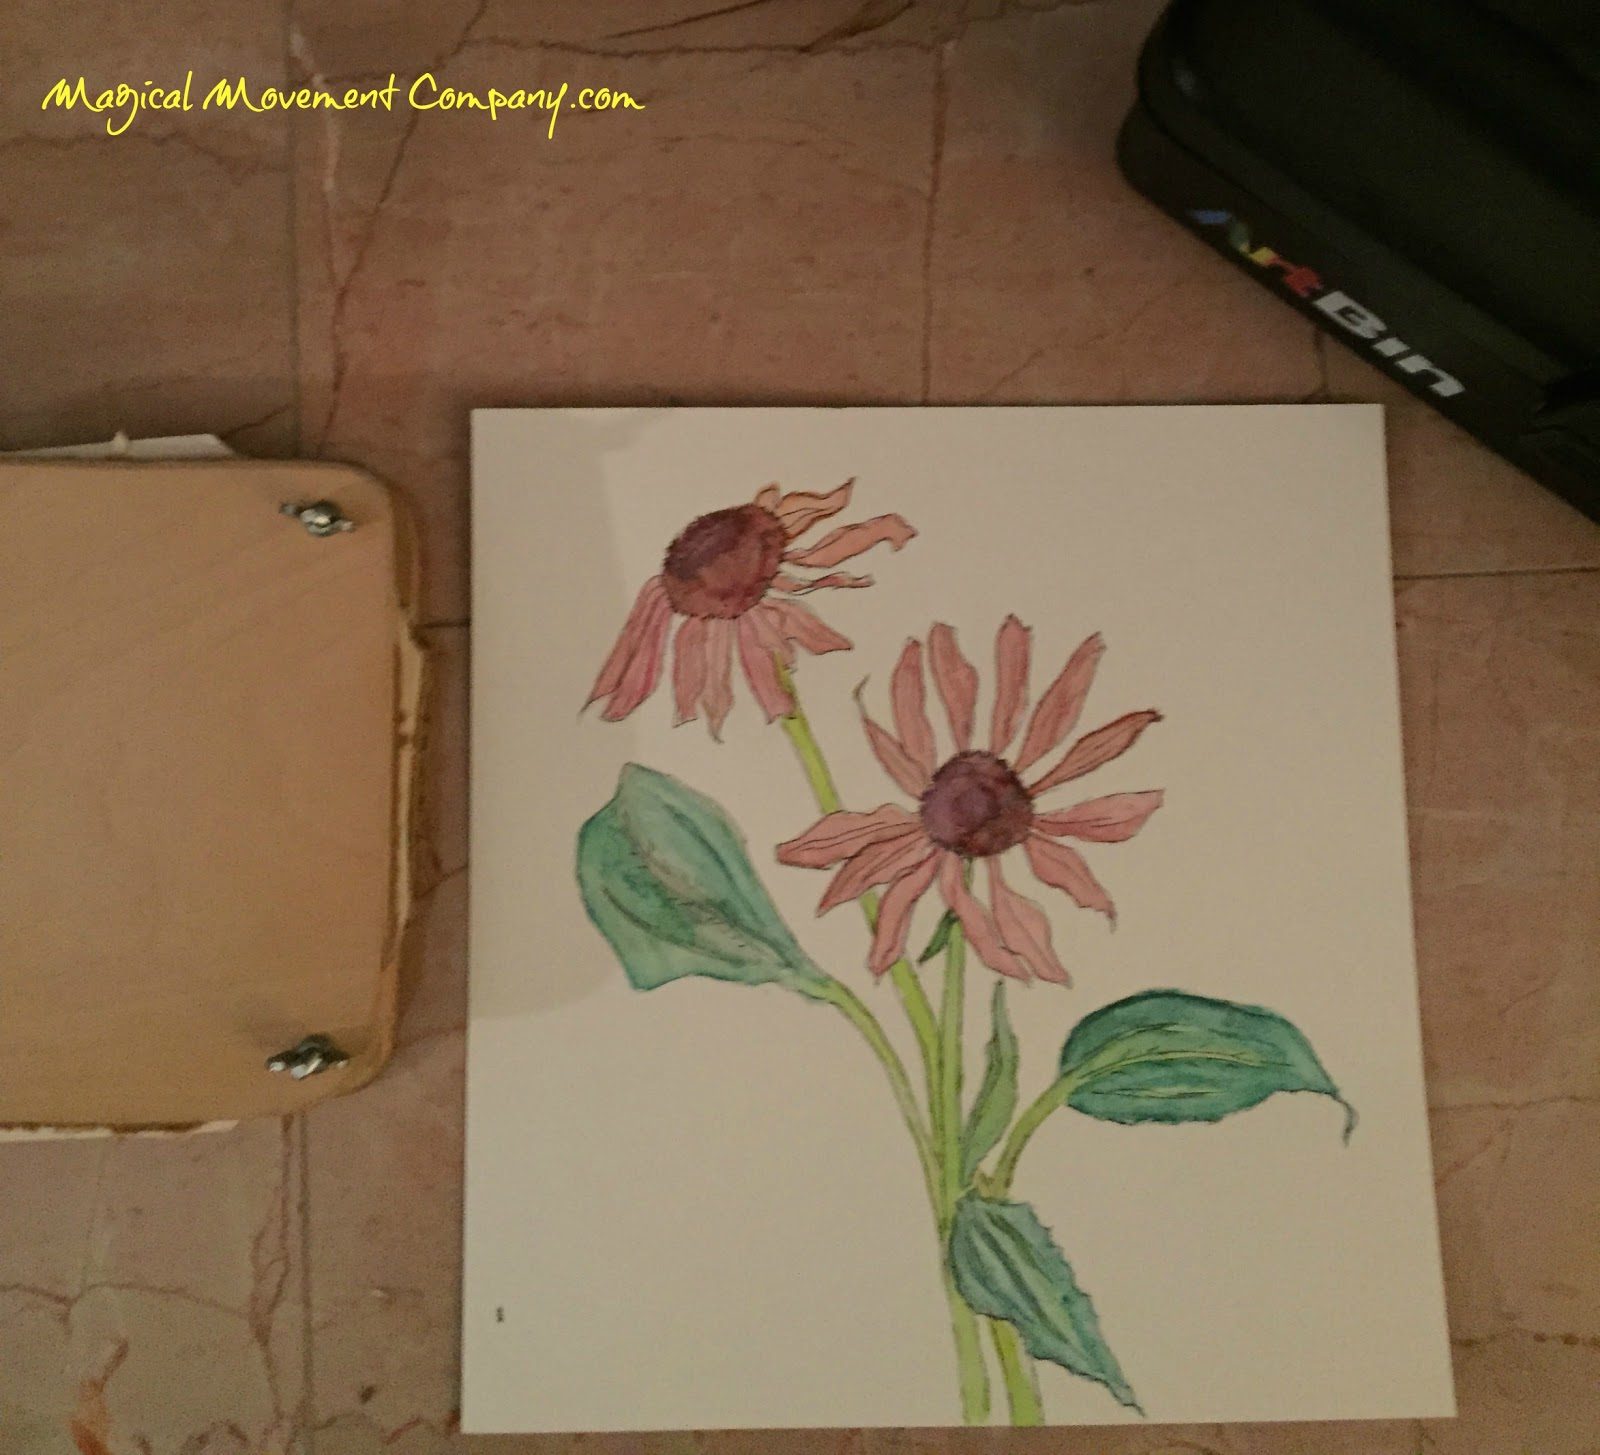 Flower Leaf Pressing With Children Montessori Style Magical